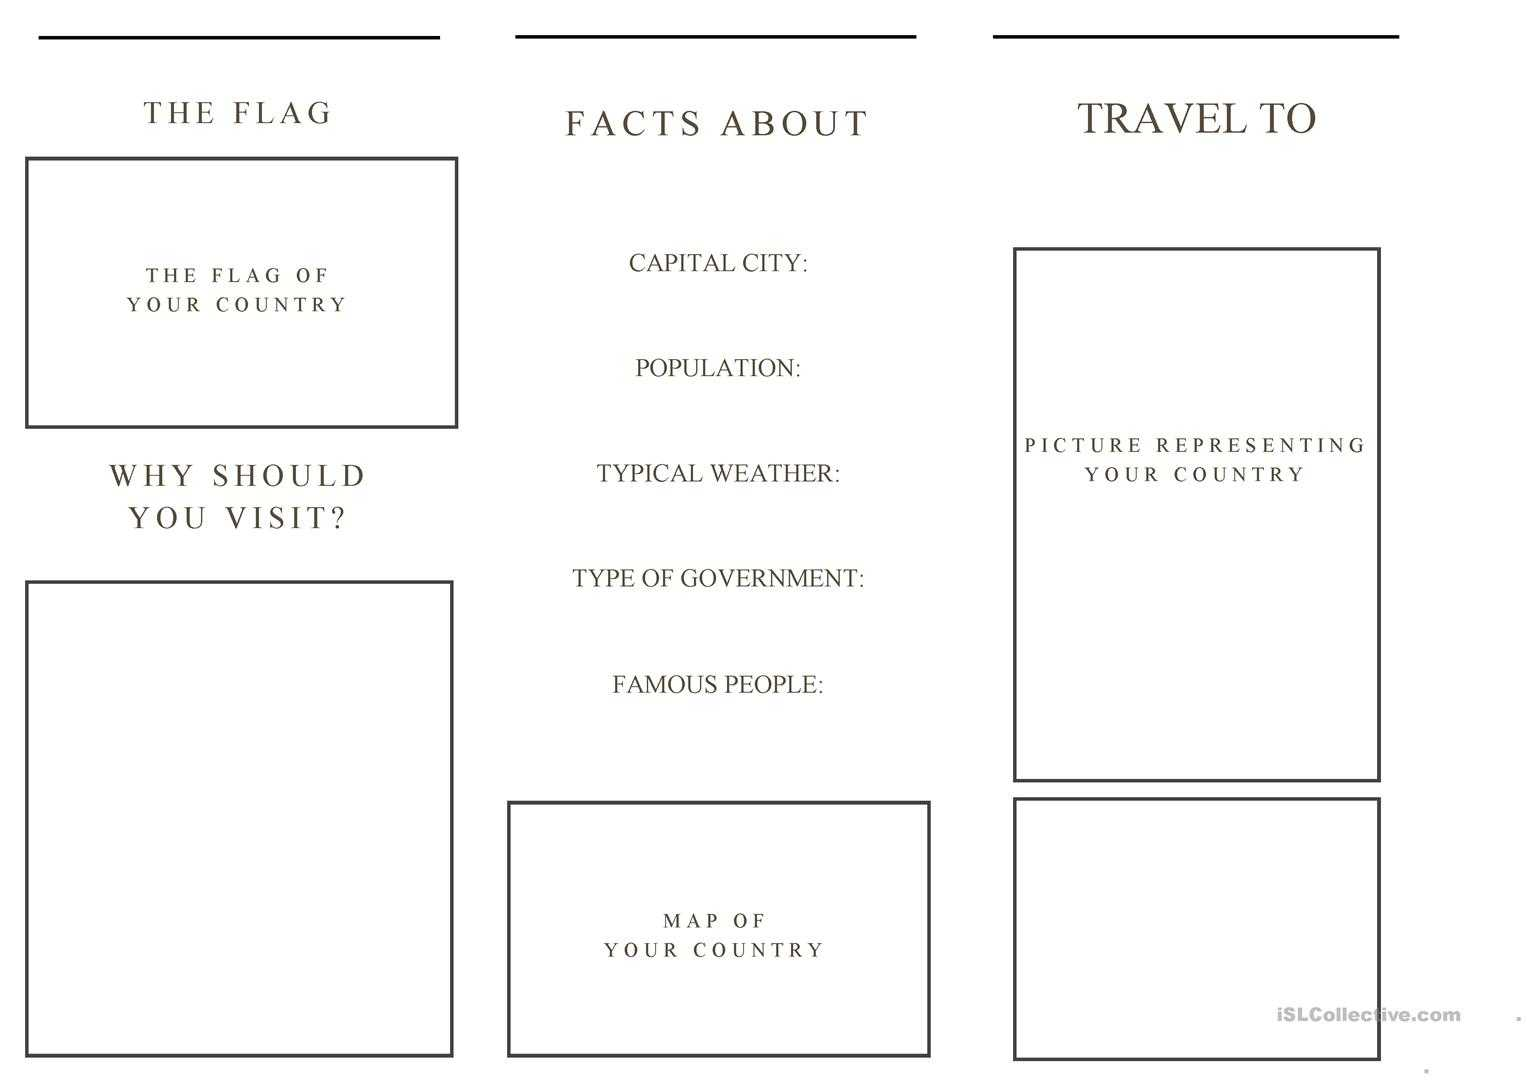 Travel Brochure Template And Example Brochure - English Esl Pertaining To Travel Brochure Template For Students